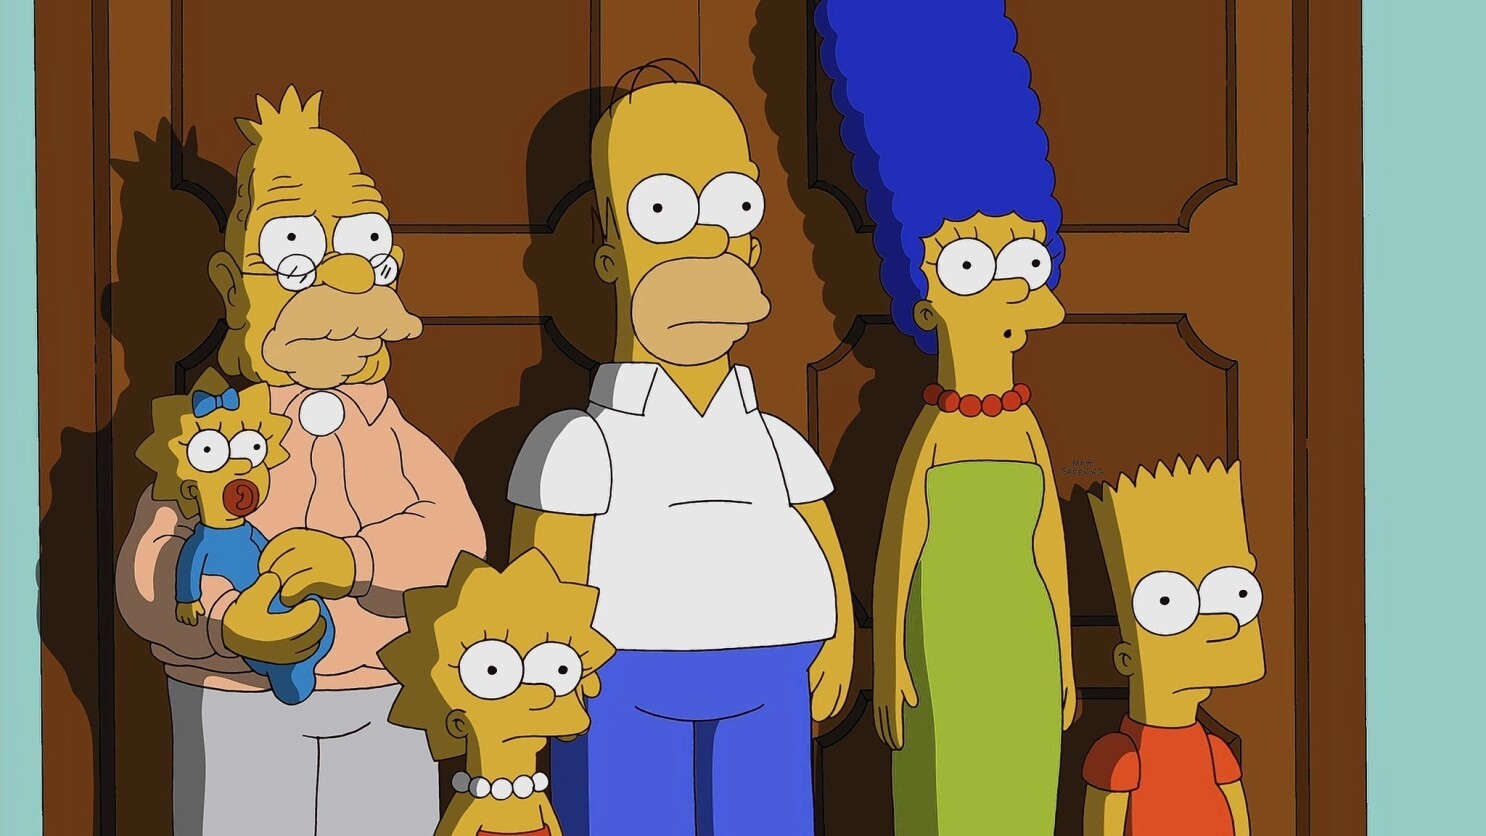 Did The Simpsons Predict The Coronavirus Twitter Says Yes Los Angeles Times